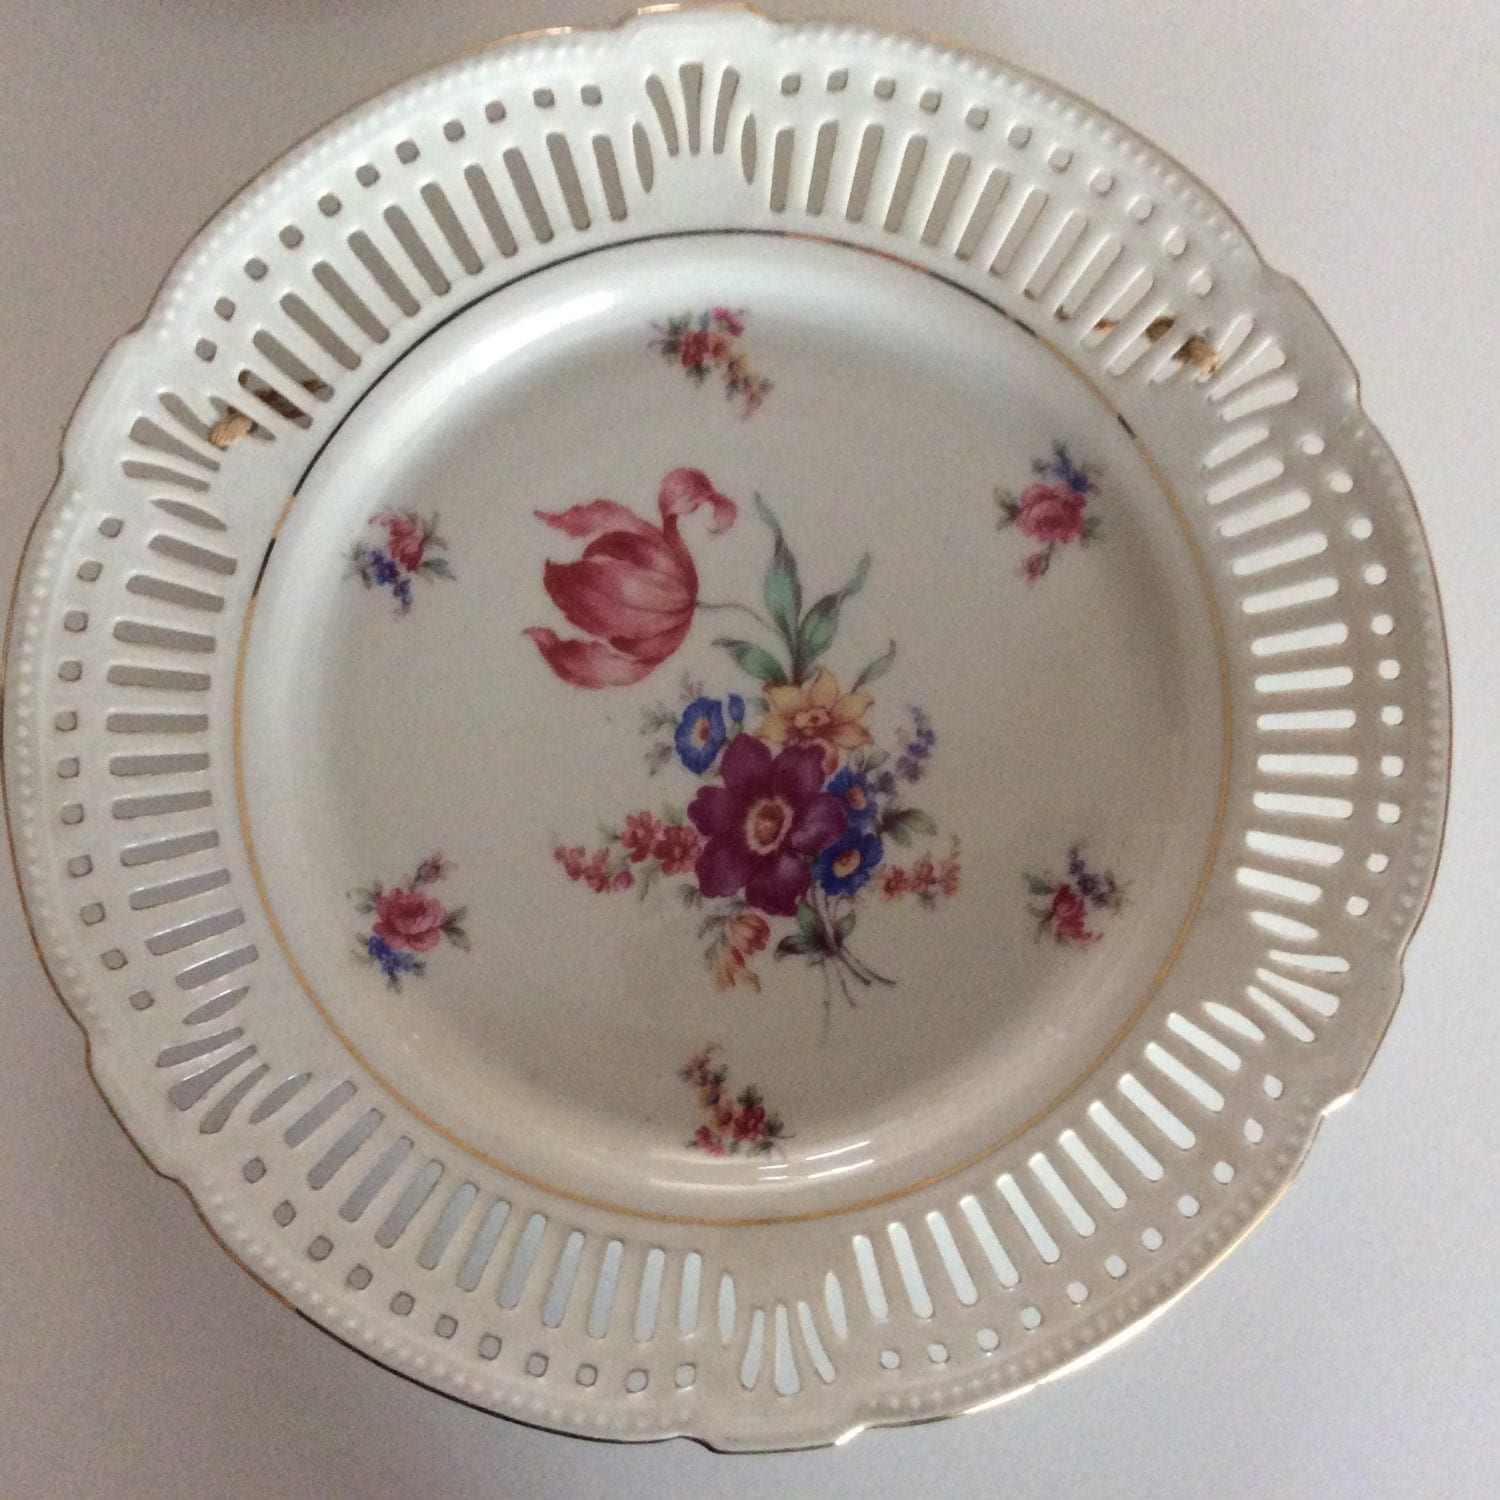 Vintage Germany Plate Antique Germany Plate by Trendsations